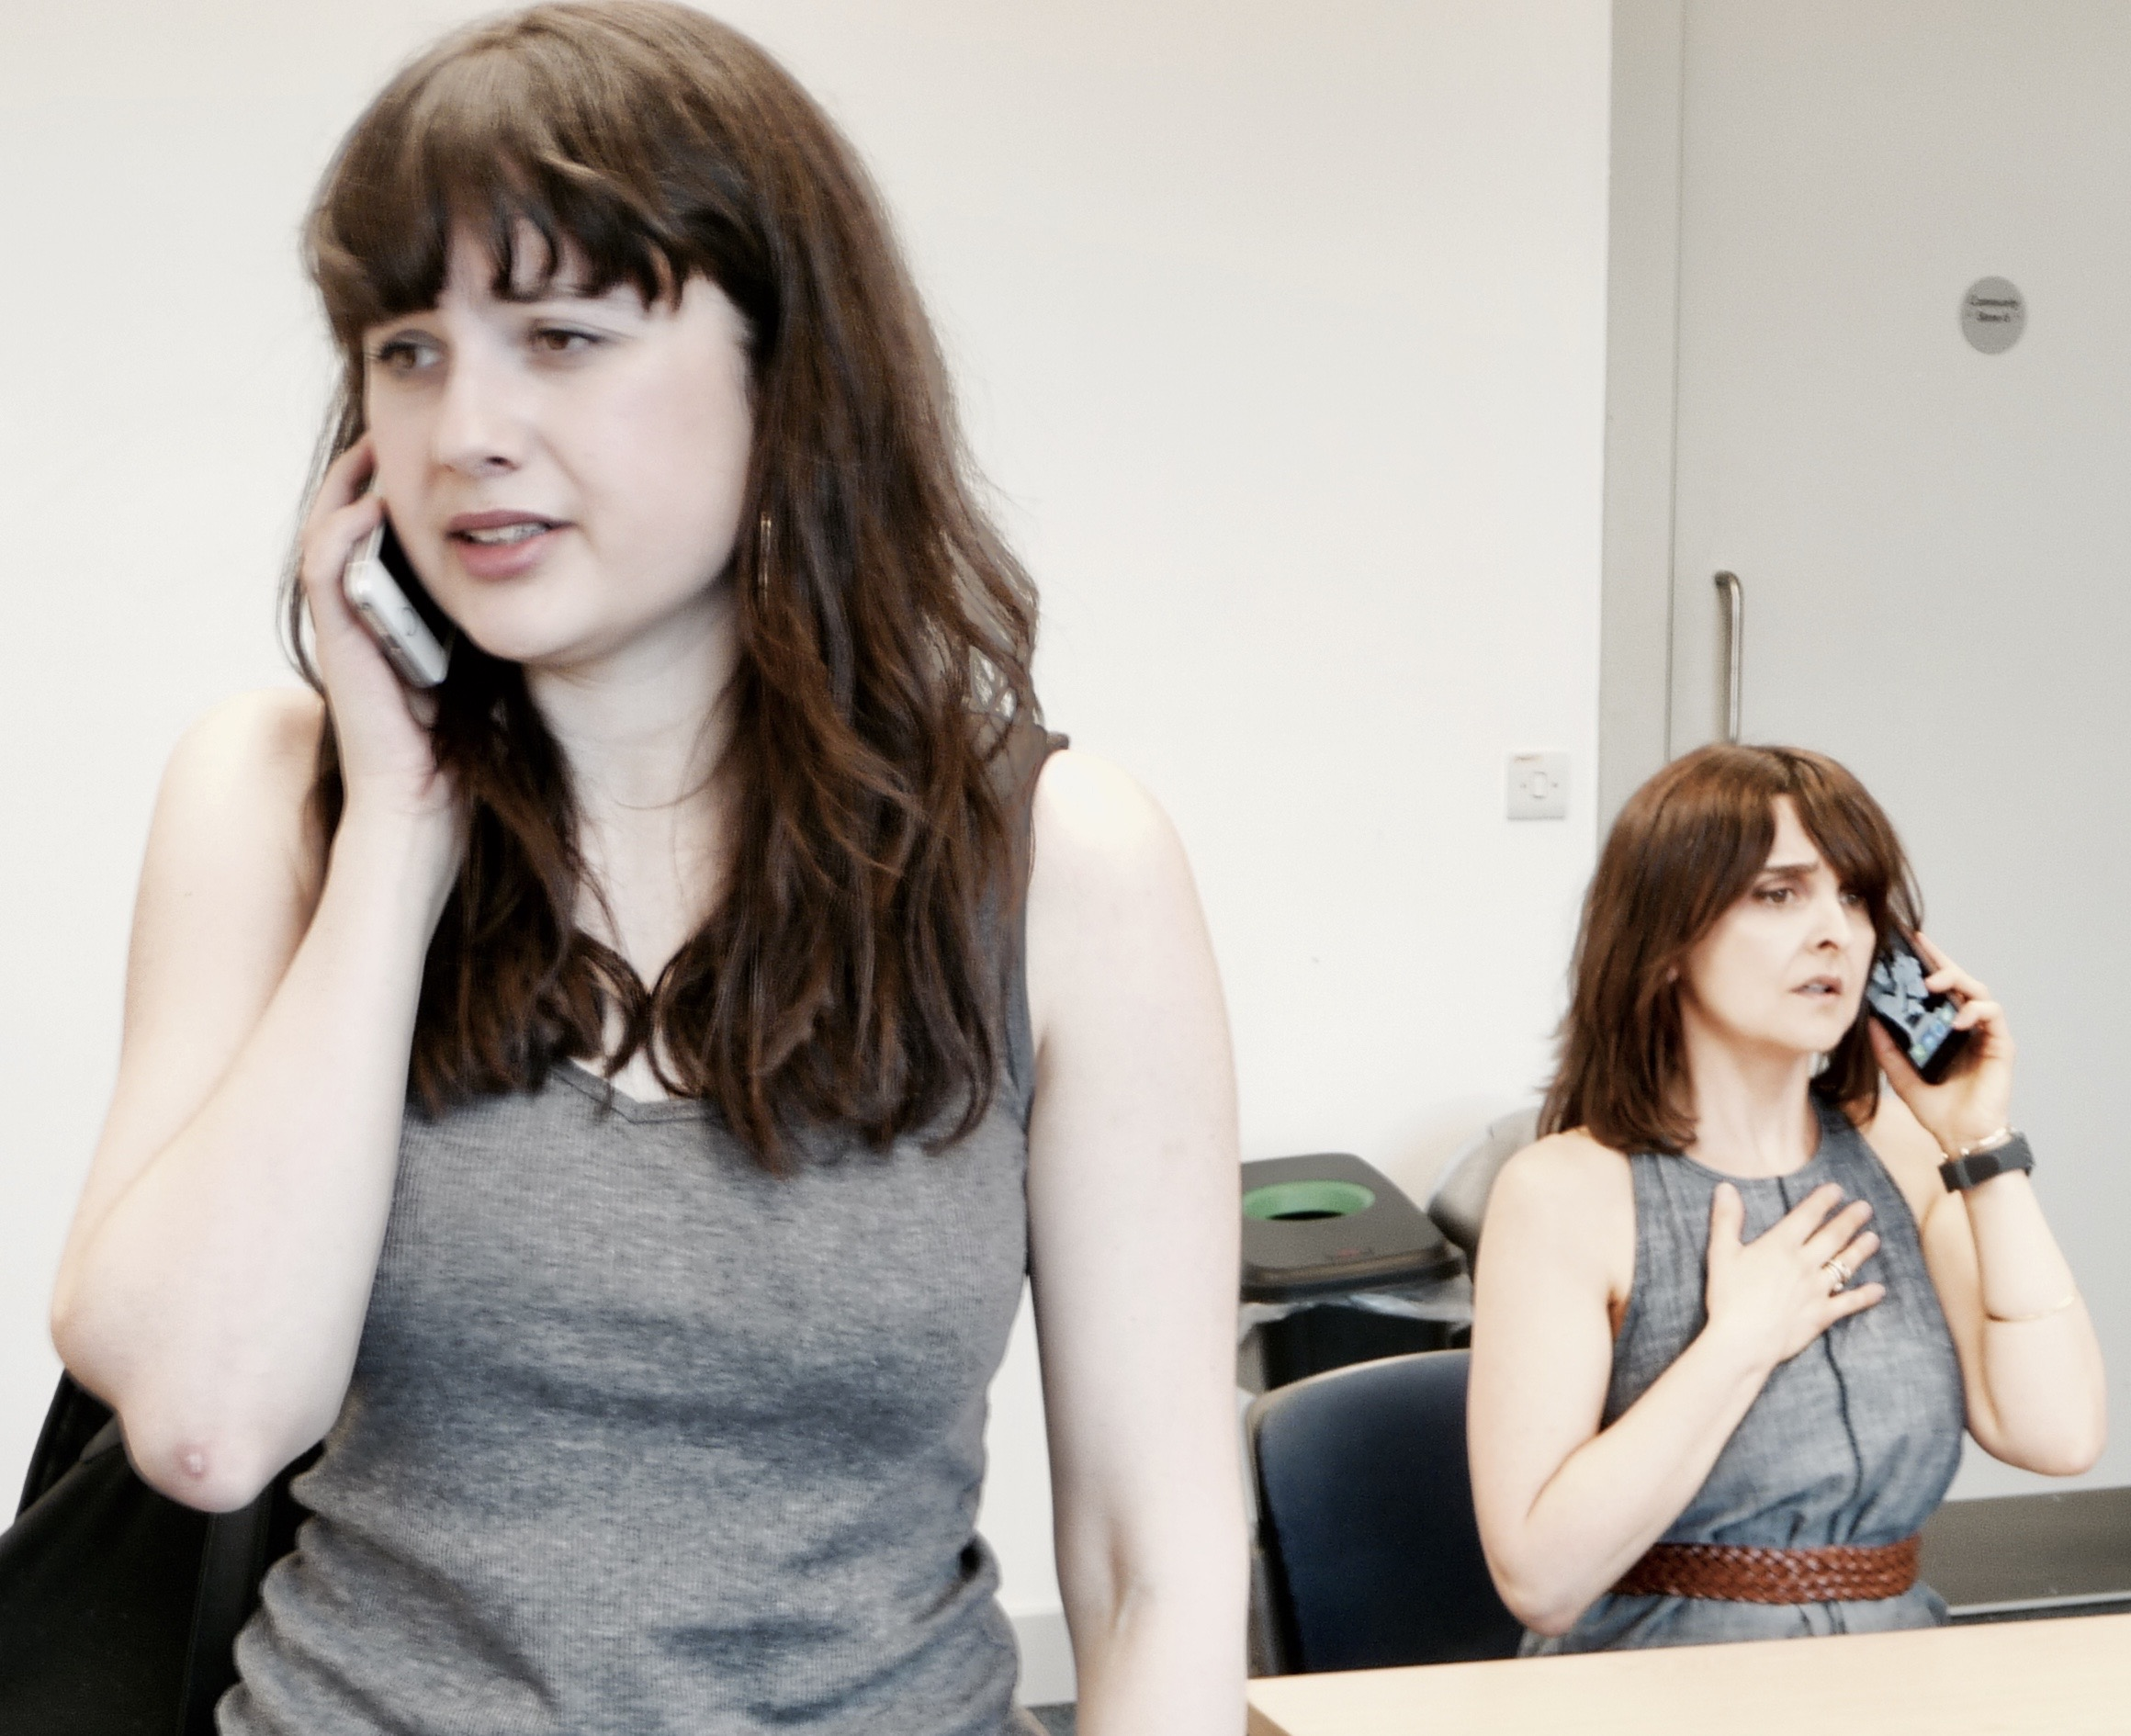 In rehearsals for VEGAN VISITING by Micah, directed by Jaclyn Bradley. Here with Rebecca Rayne. Performing at The Southwark Playhouse on the 18th June as part of Little Pieces of Gold.